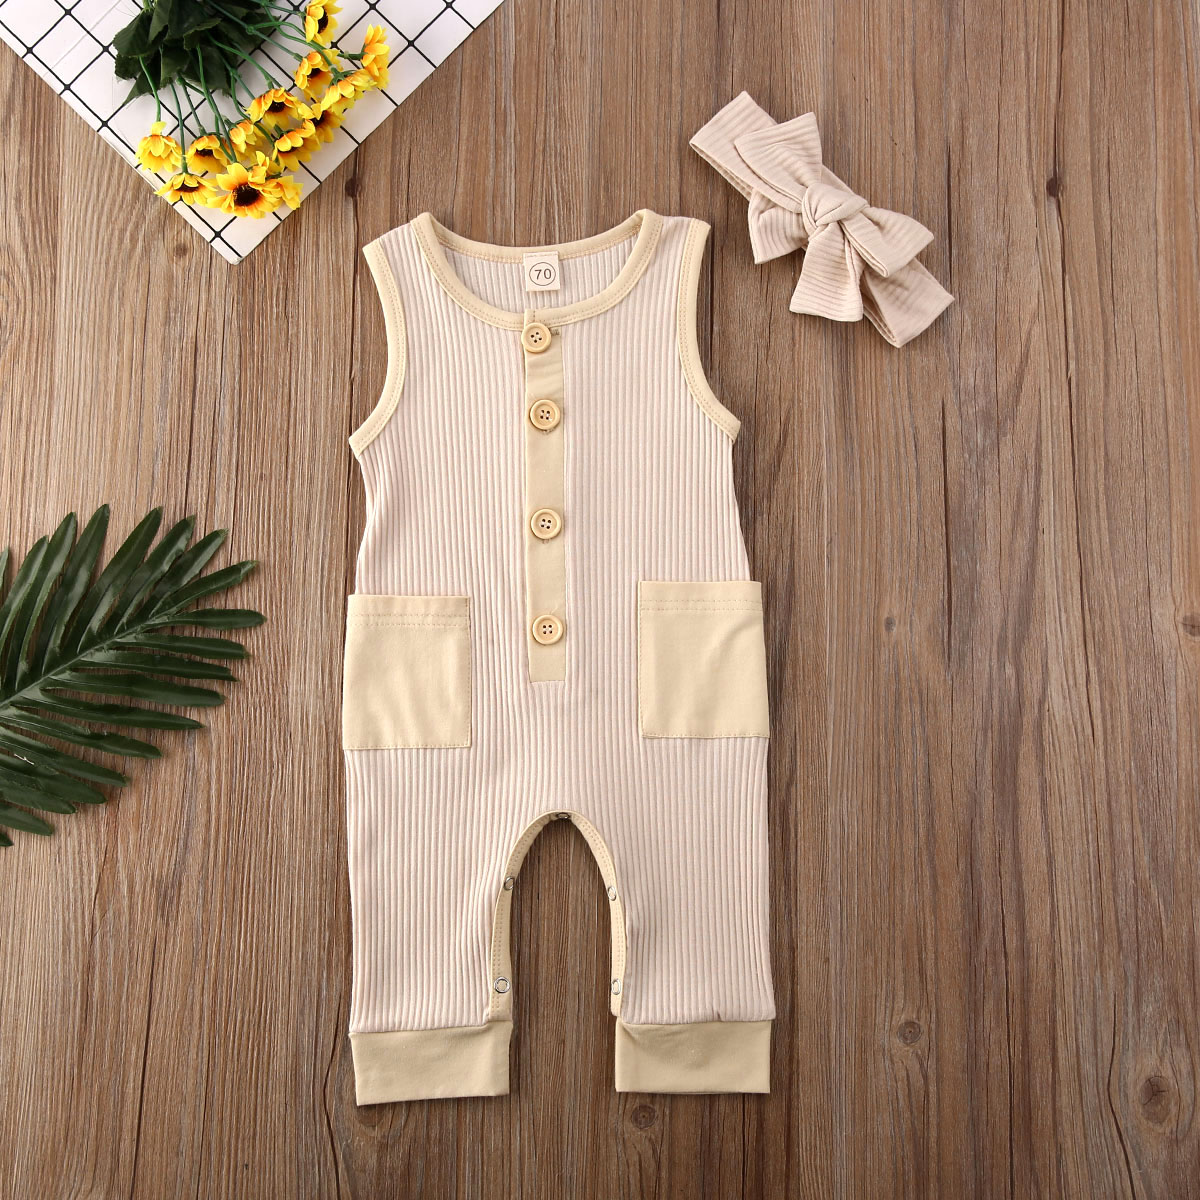 US 2PCS Newborn Baby Girl Boy Clothes Knitted Romper Jumpsuit Solid Outfits Set